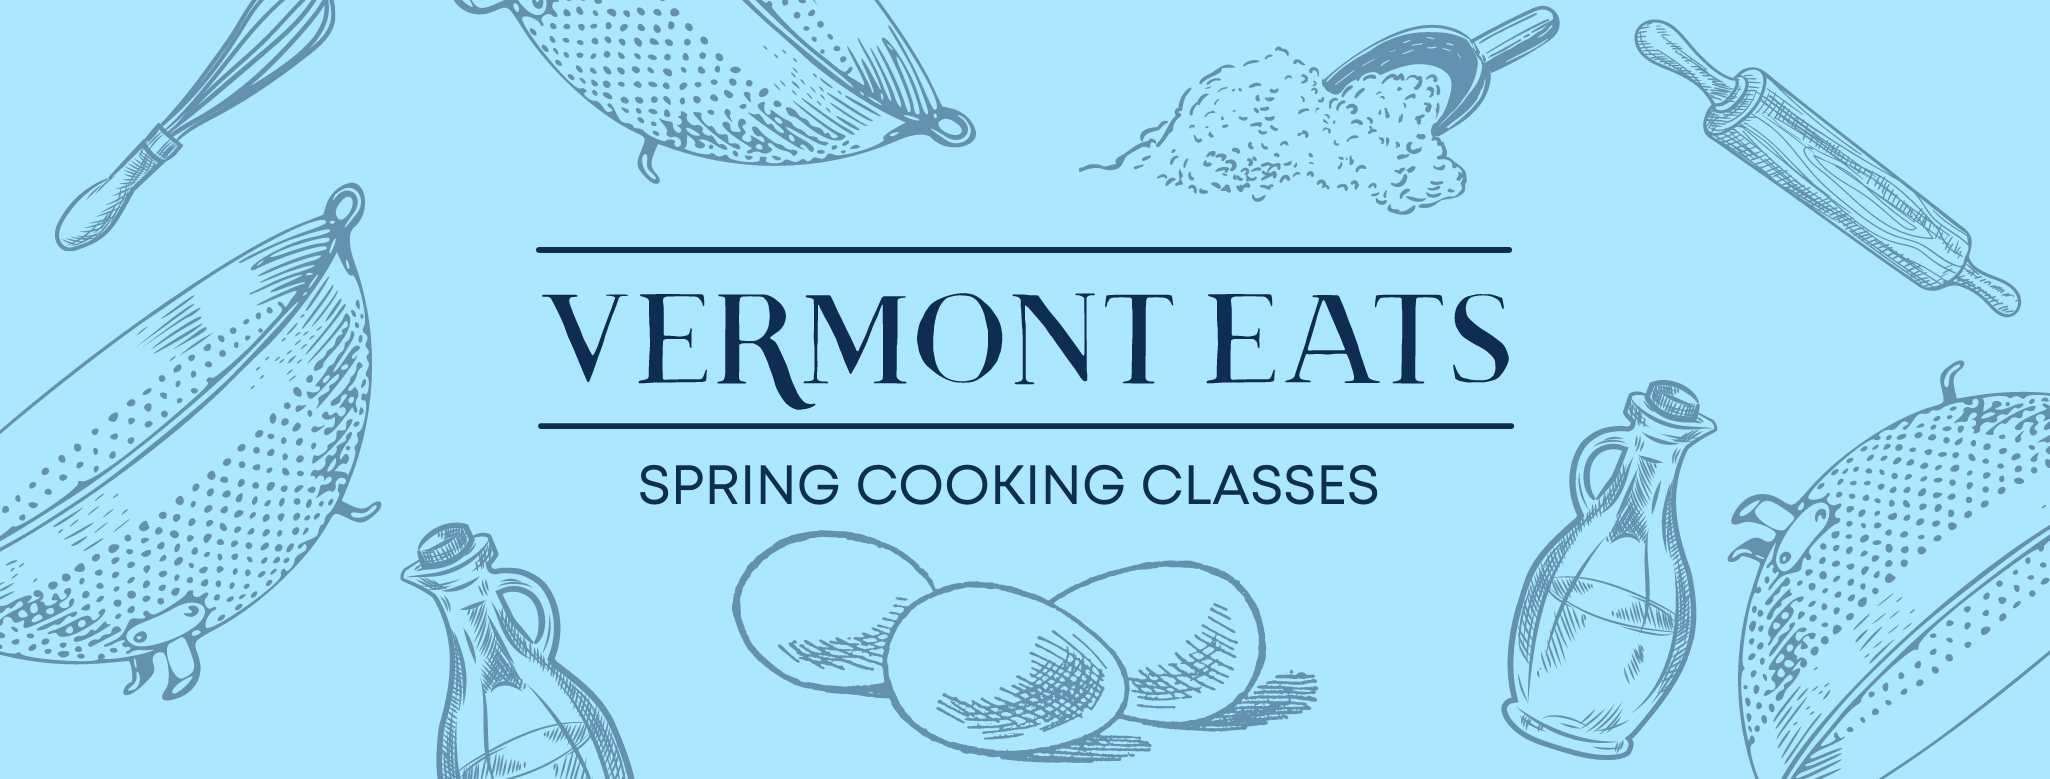 Vermont Eats Spring Cooking Classes